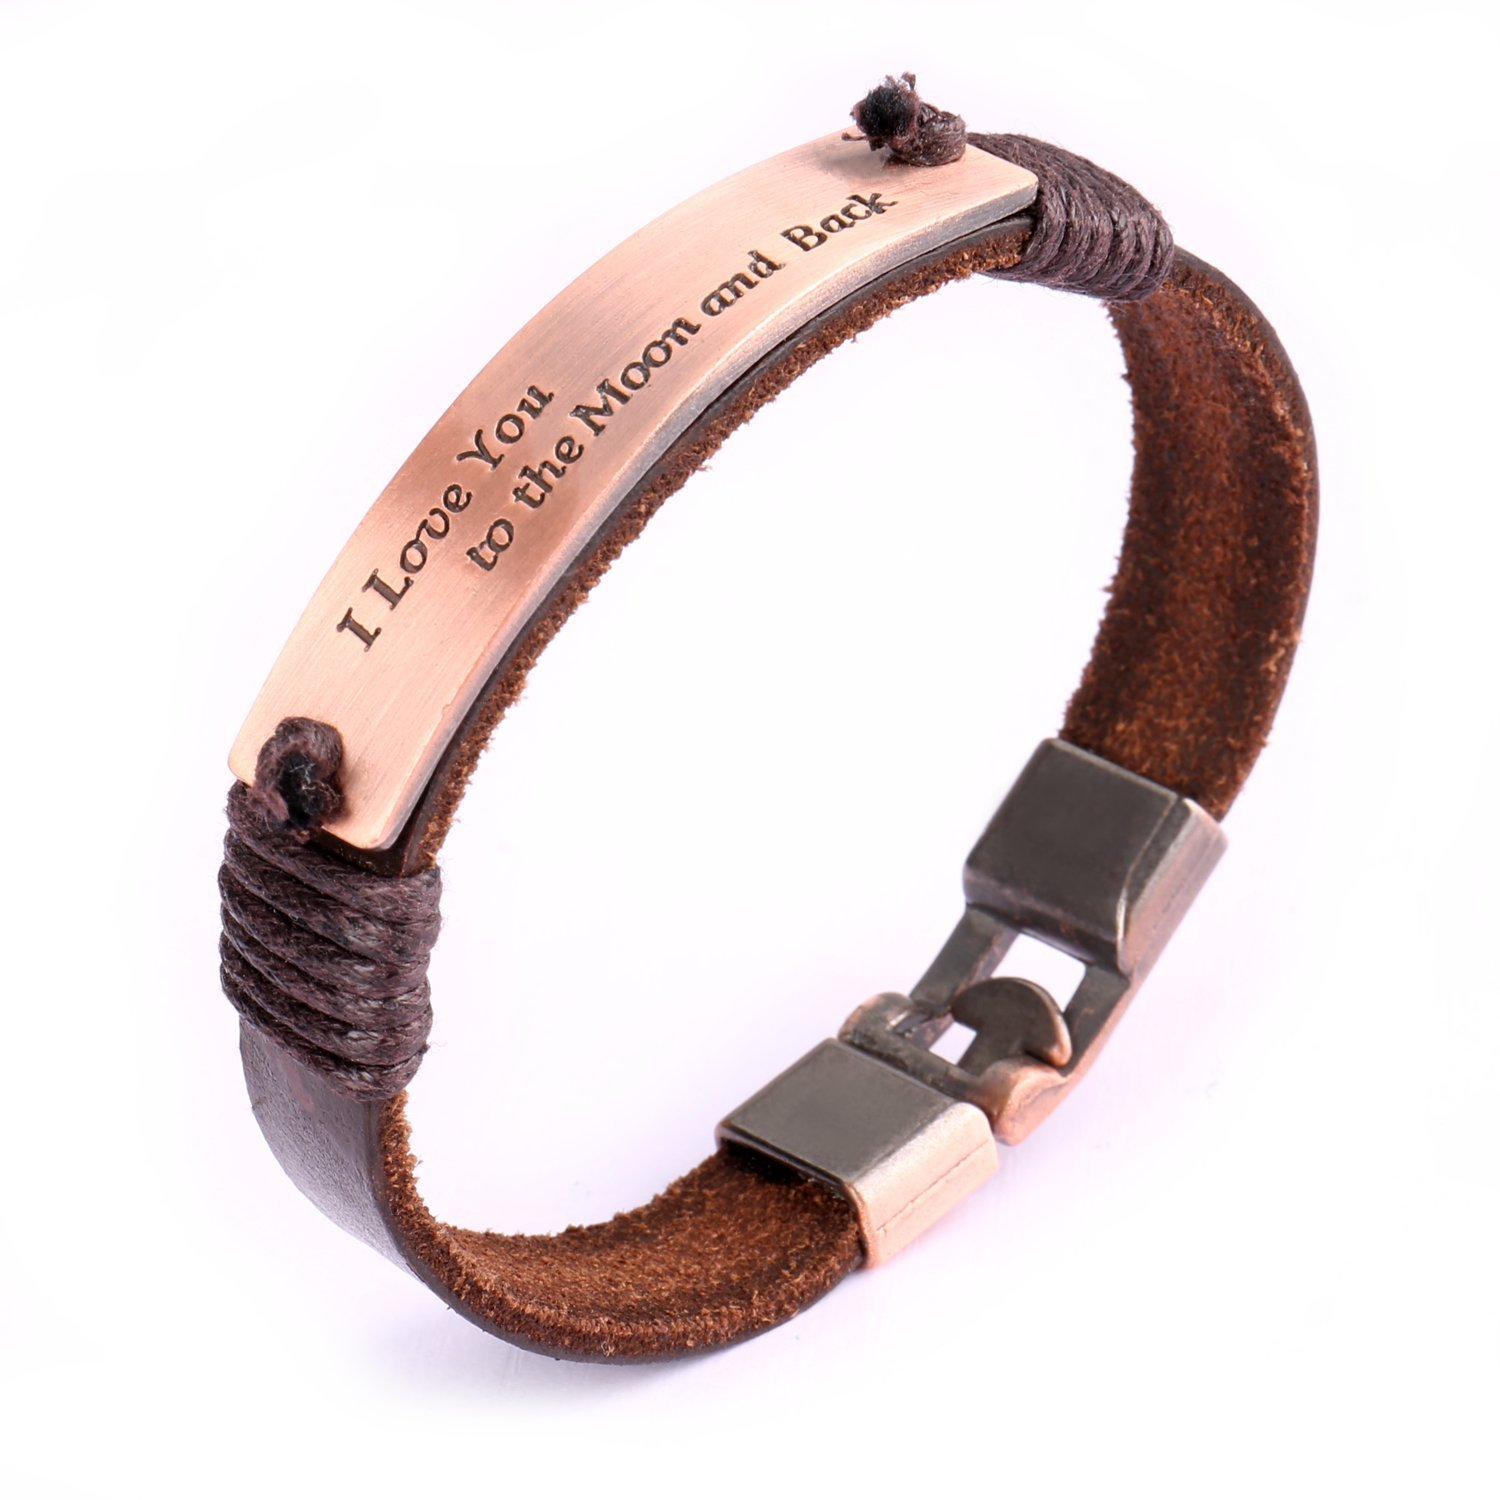 Leather Bracelet, Uhibros Genuine Leather Wrist Band Cuff I Love You to the Moon and Back Rose Stamped Plate Tag LB-02